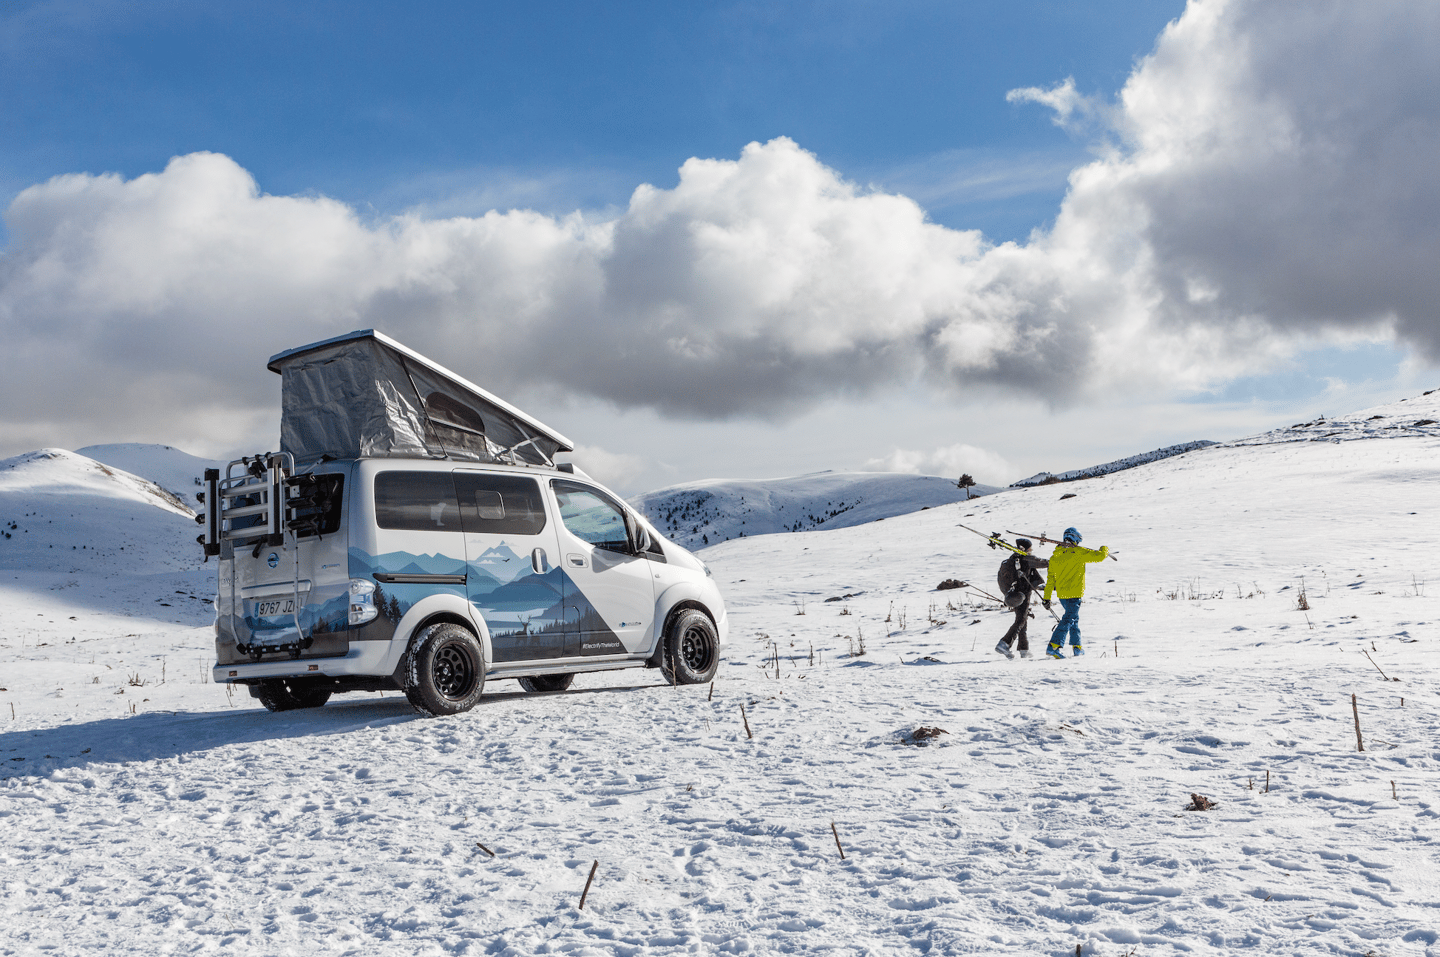 Nissan explores the future of electric four-season camping with the e-NV200 Winter Camper concept